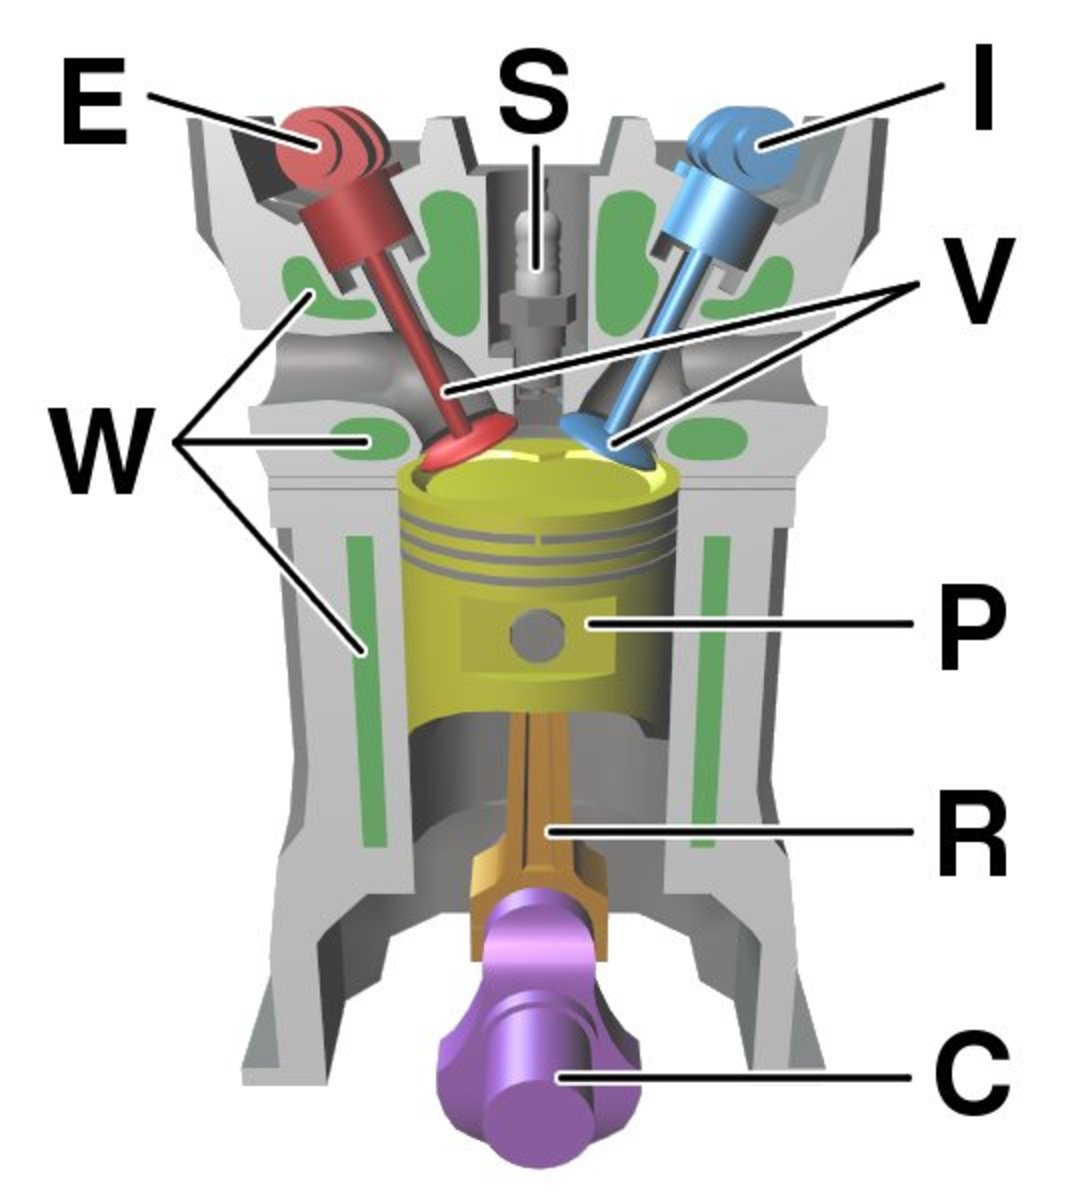 A spark plug and surrounding components:  C: Crankshaft E: Exhaust camshaft I: Inlet camshaft P: Piston R: Connecting rod S: Spark plug V: Valves. Red: exhaust, Blue: intake W: Cooling water duct